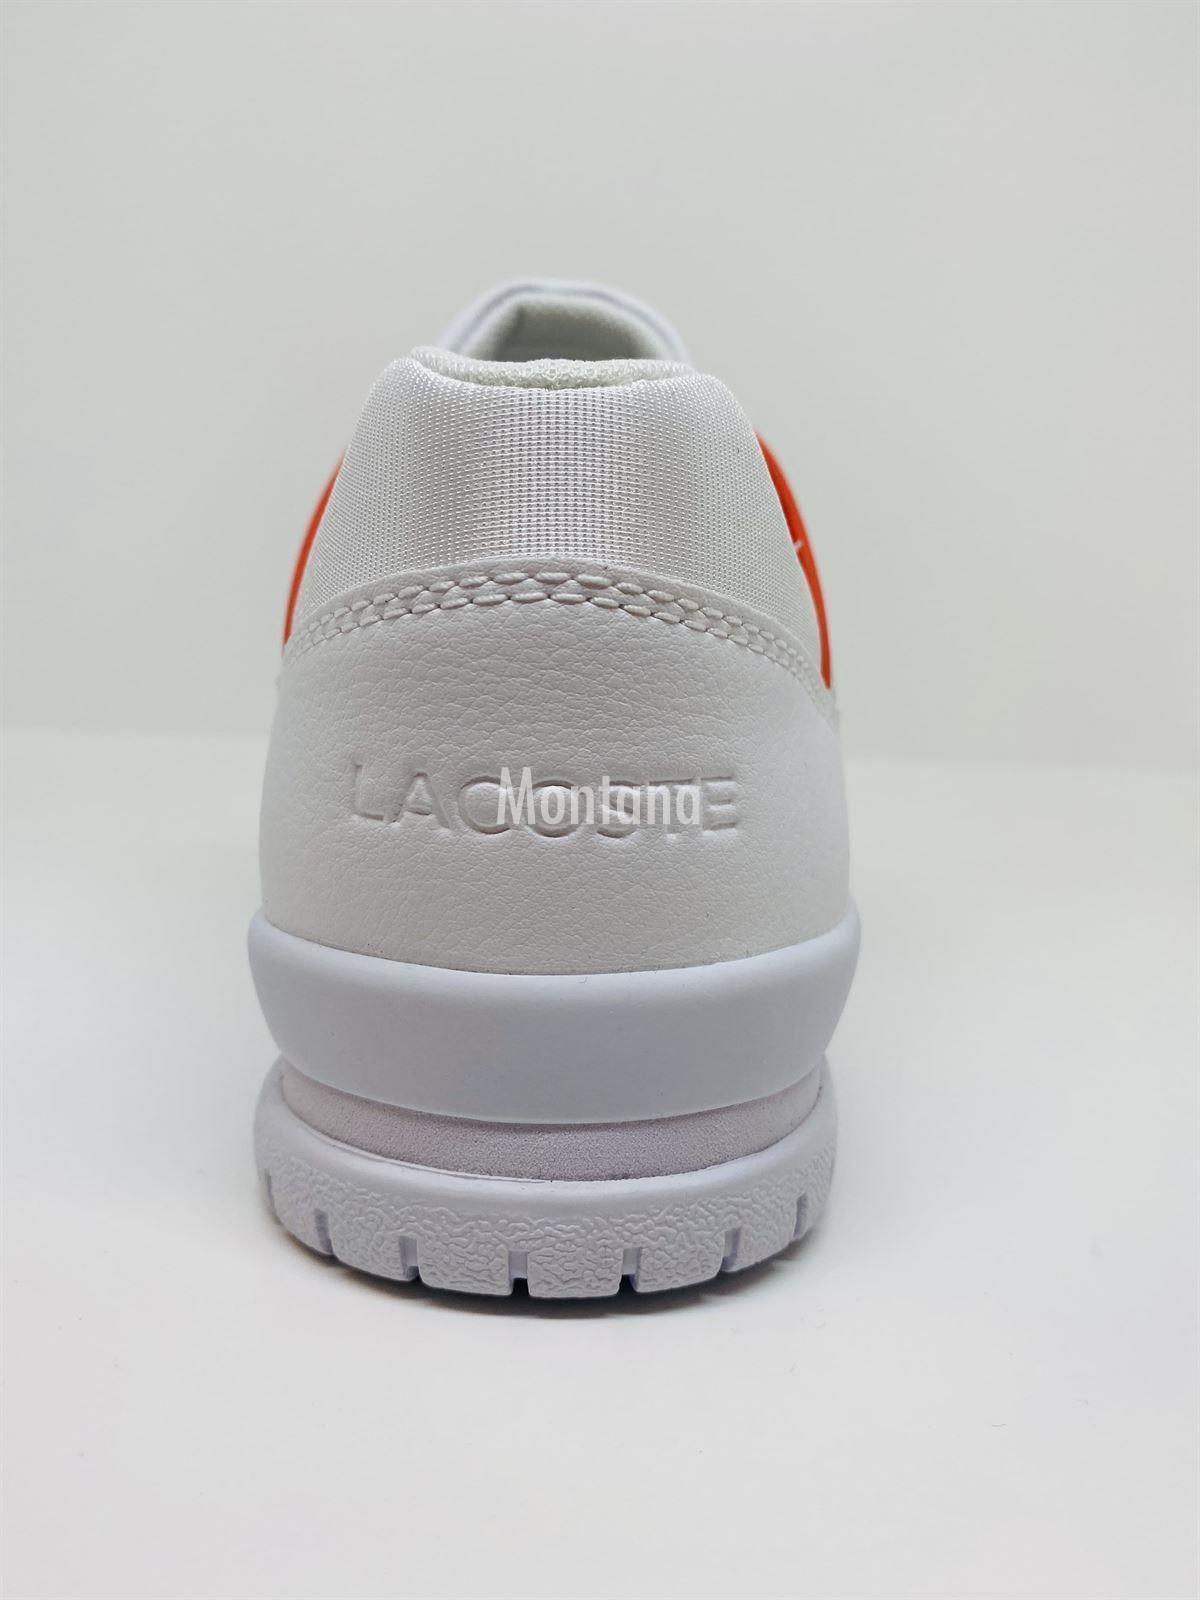 Zapatillas LACOSTE Courtpoint Leather 39SMA0004 White/Navy - Imagen 3